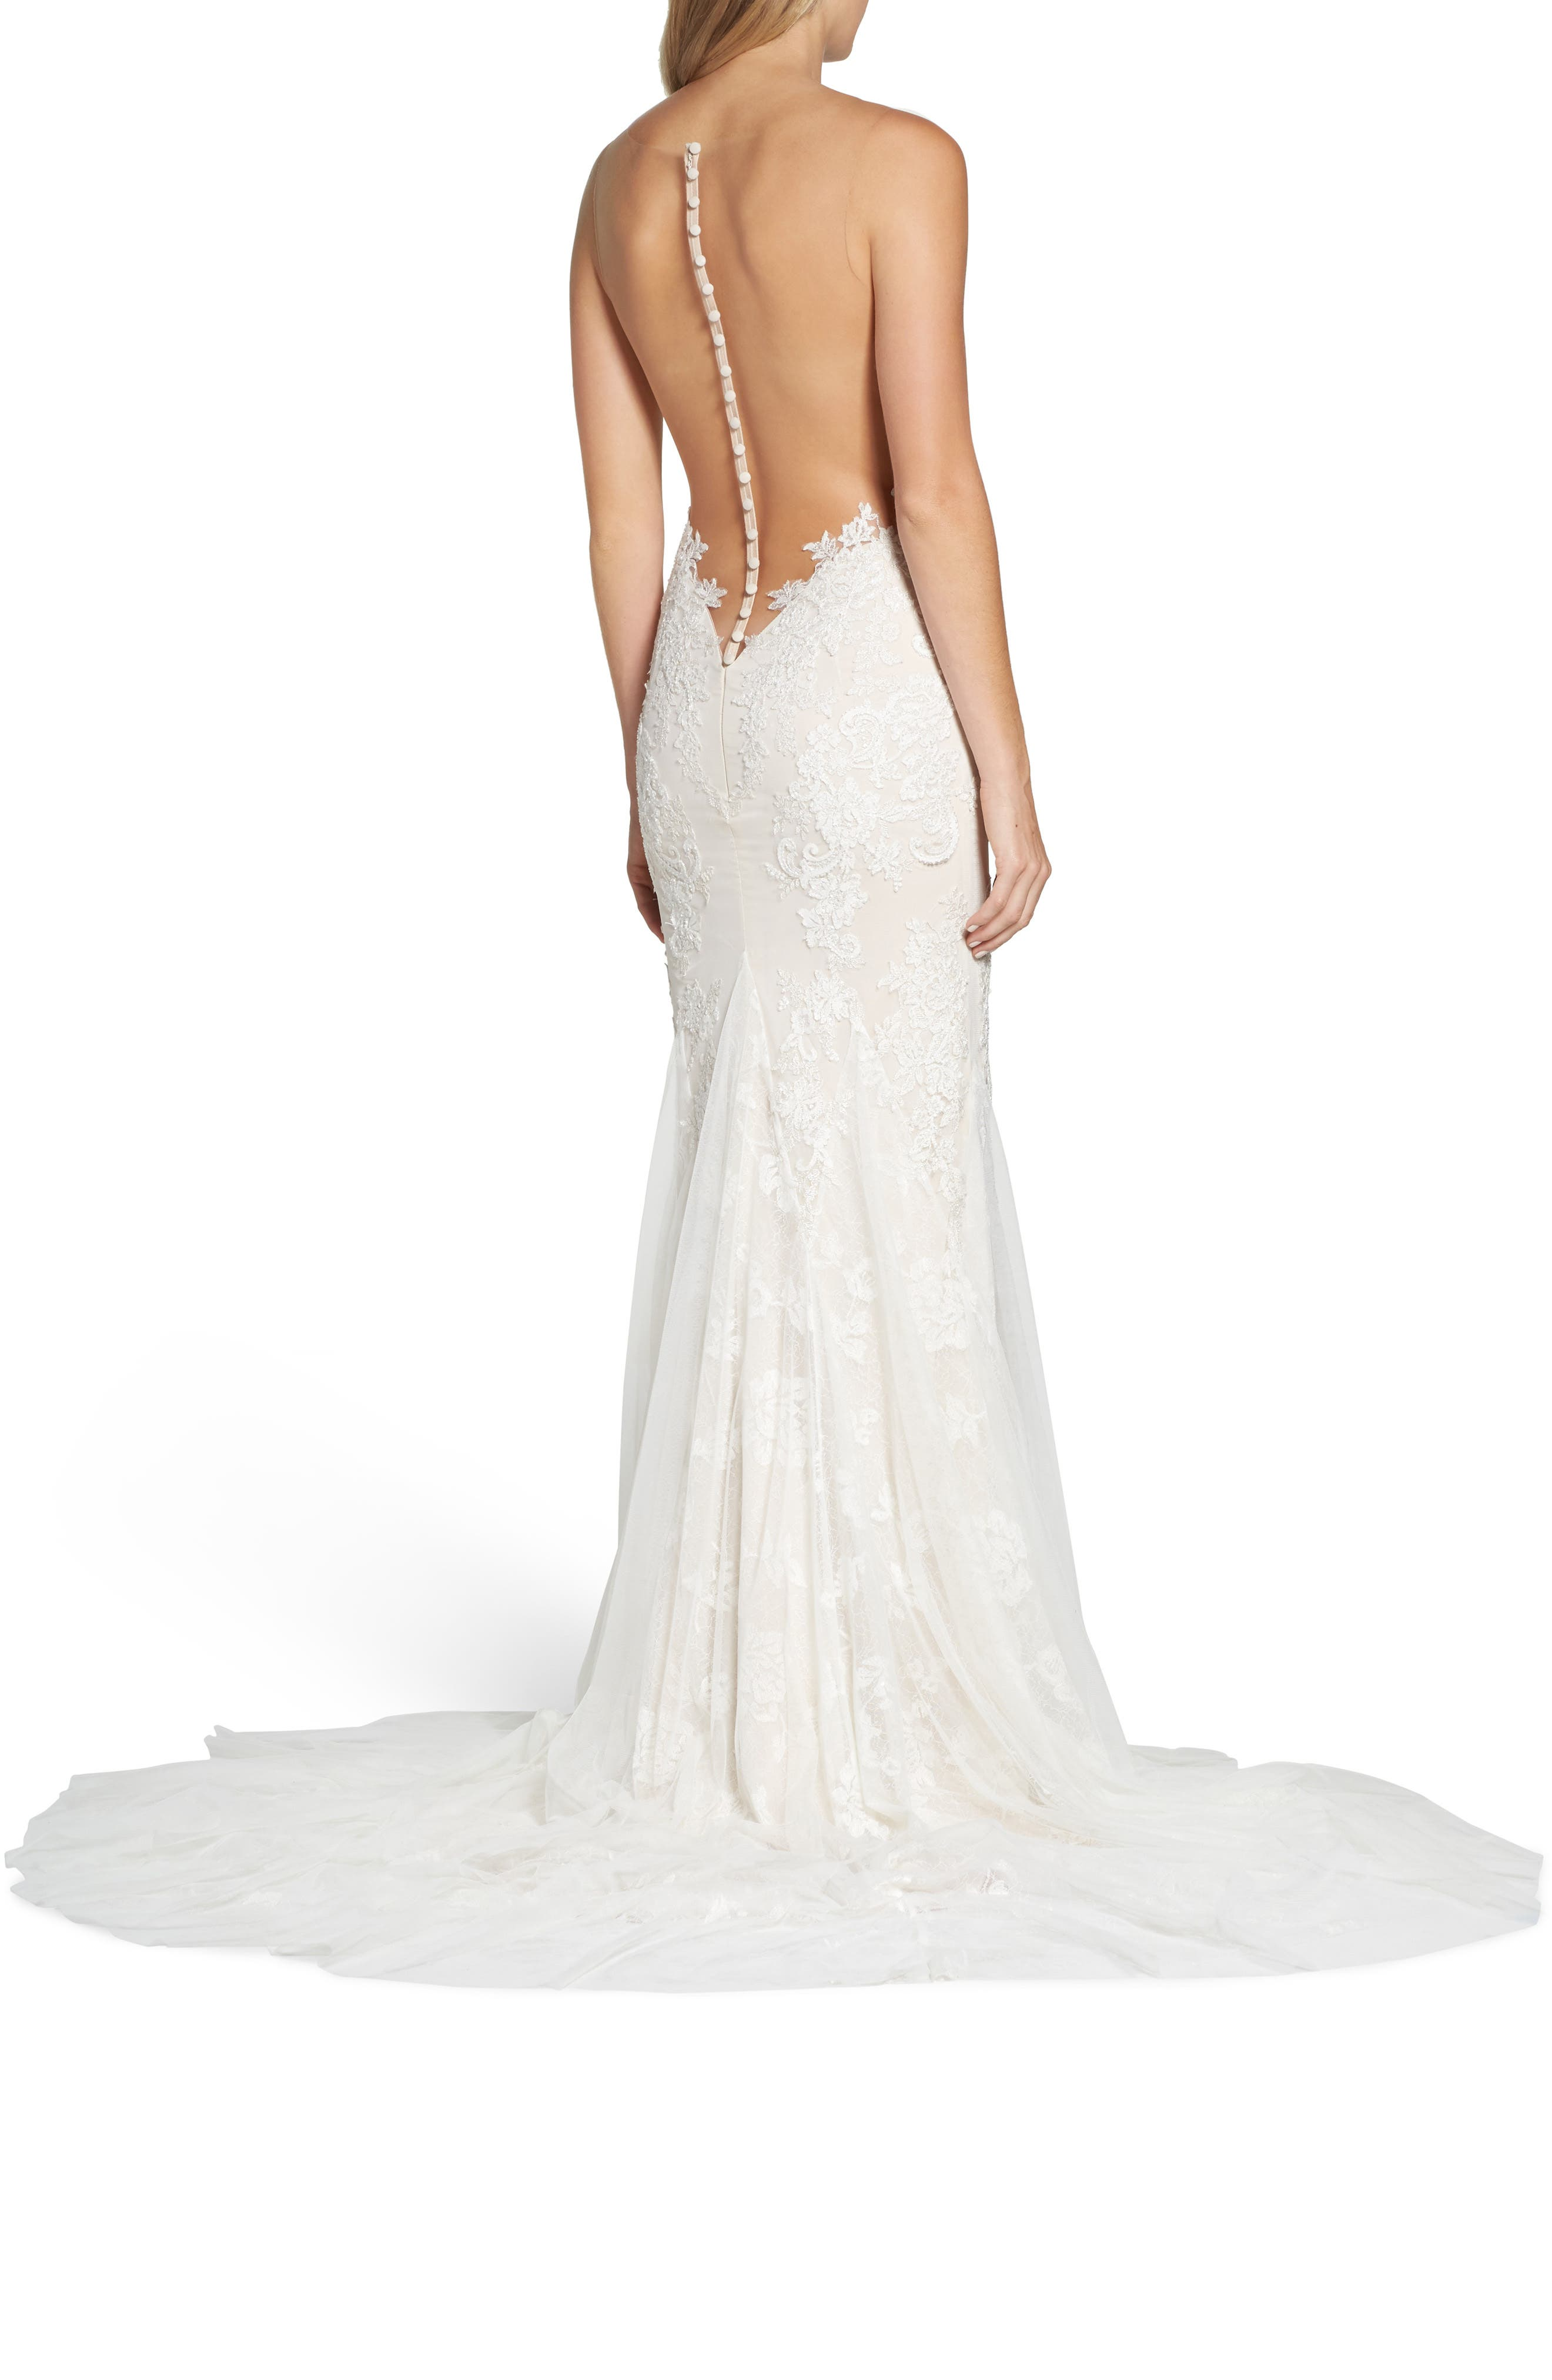 Daisy Illusion V-Neck Gown,                             Alternate thumbnail 2, color,                             OFF WHITE/ SOFT NUDE